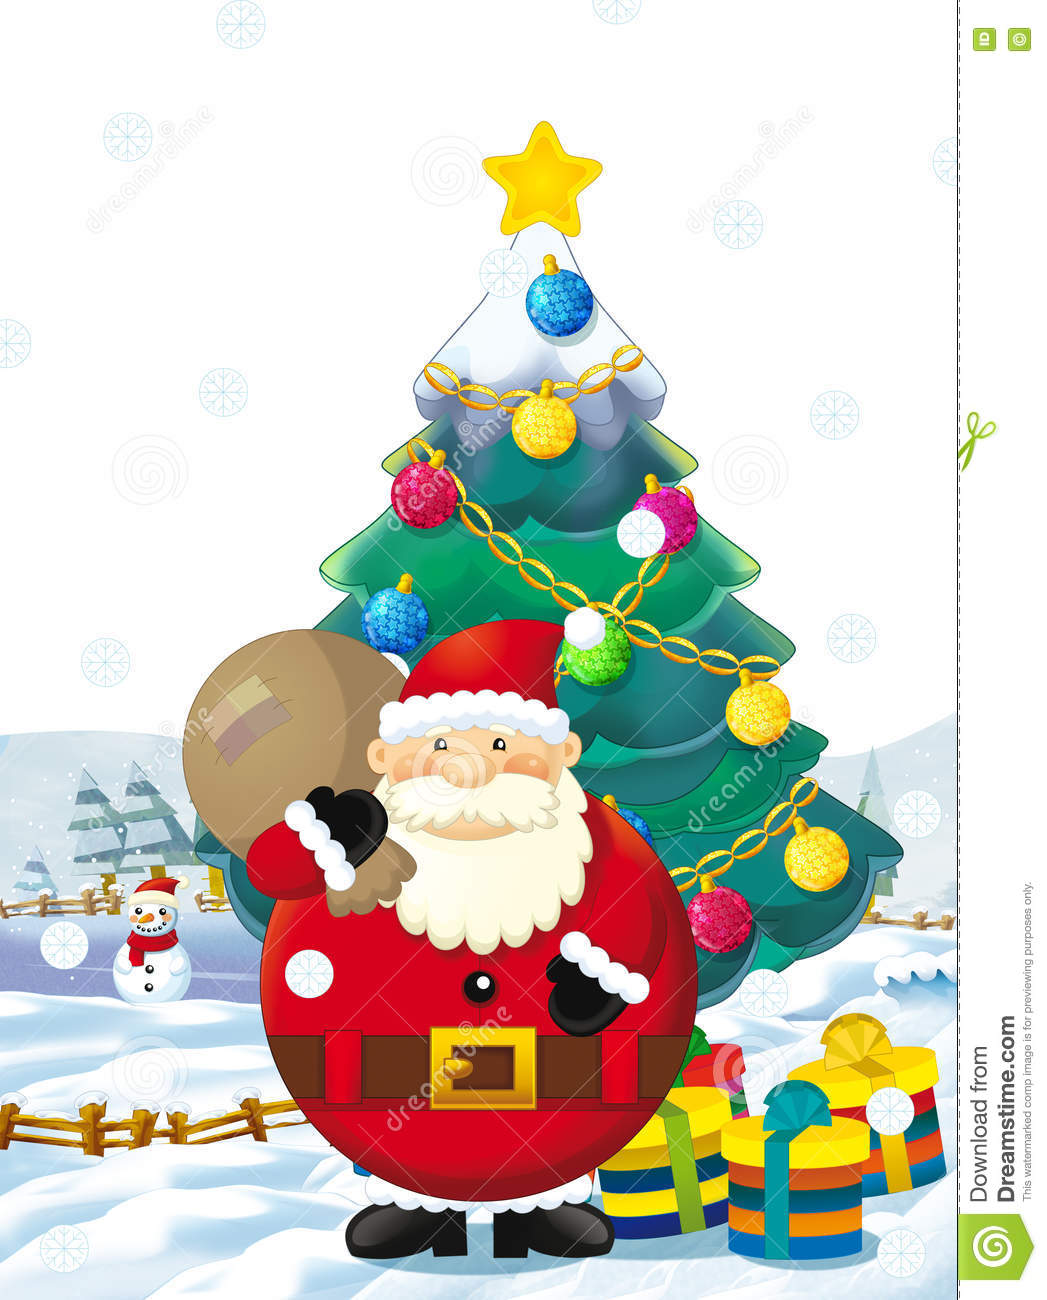 Christmas Tree With Presents And Santa - Cartoon santa claus with presents standing and smiling gifts happy snowman christmas tree